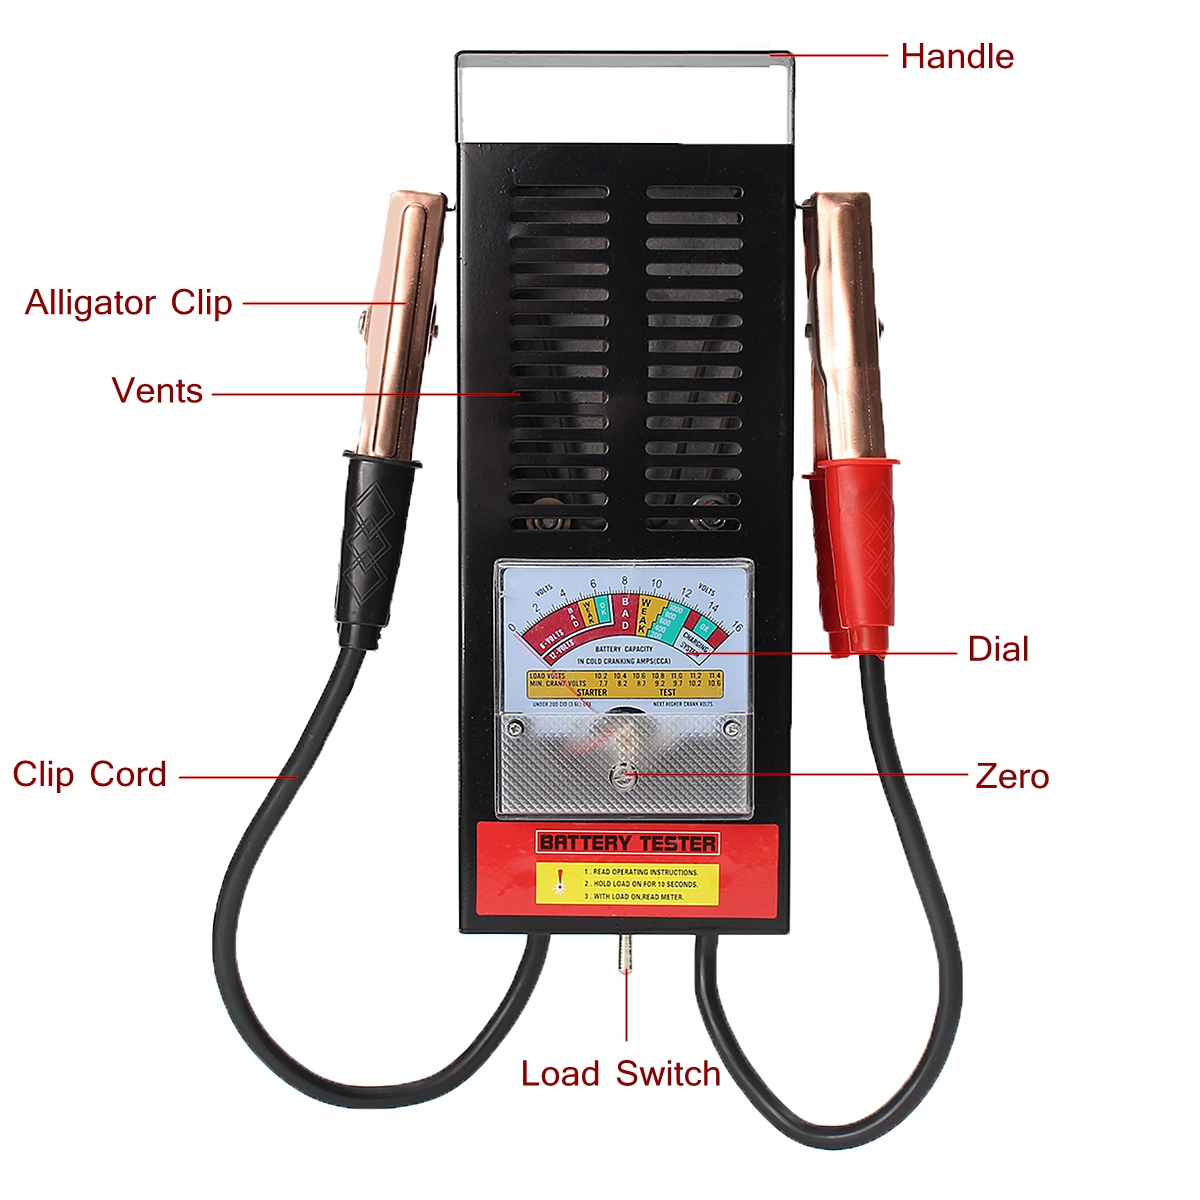 Lightweight 6 12v Car Battery Tester Test Gt Automotive Electrical Testers Continuity 6v Meter Export Style Model Bt 005 Specification 100a Type Pointer